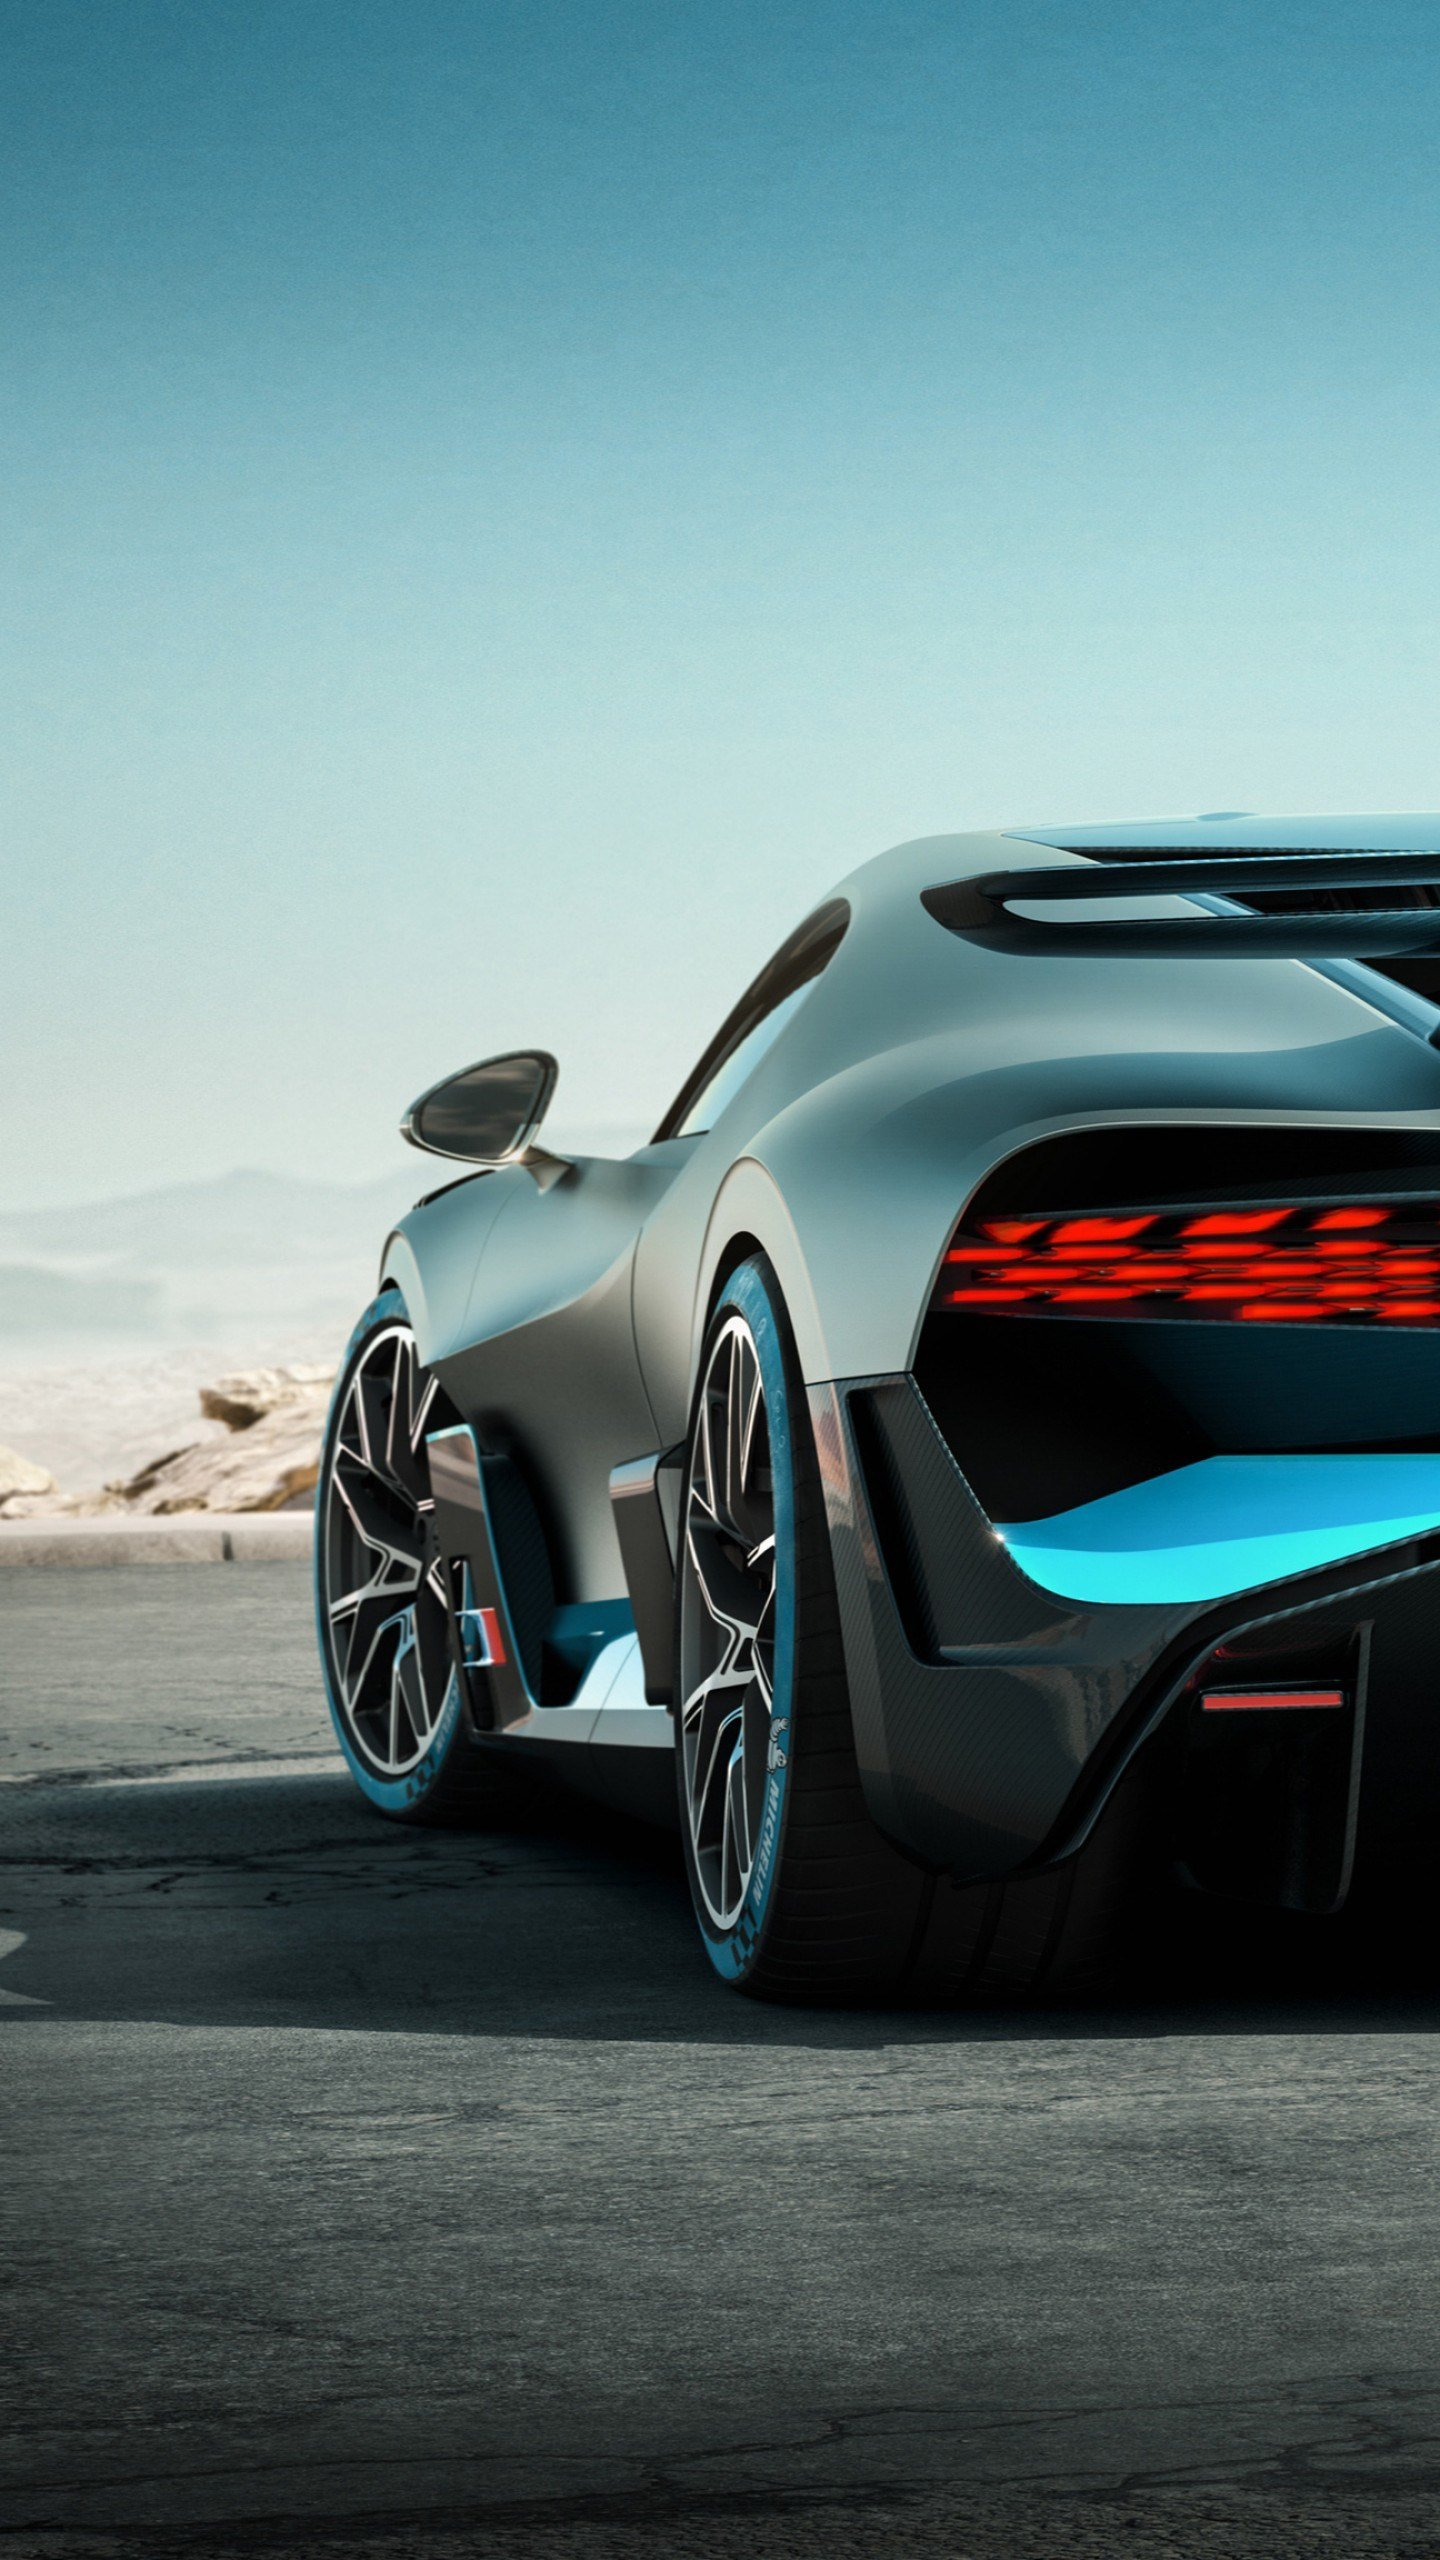 New Wallpaper Bugatti Divo 2019 Cars Supercar 4K Cars On This Month